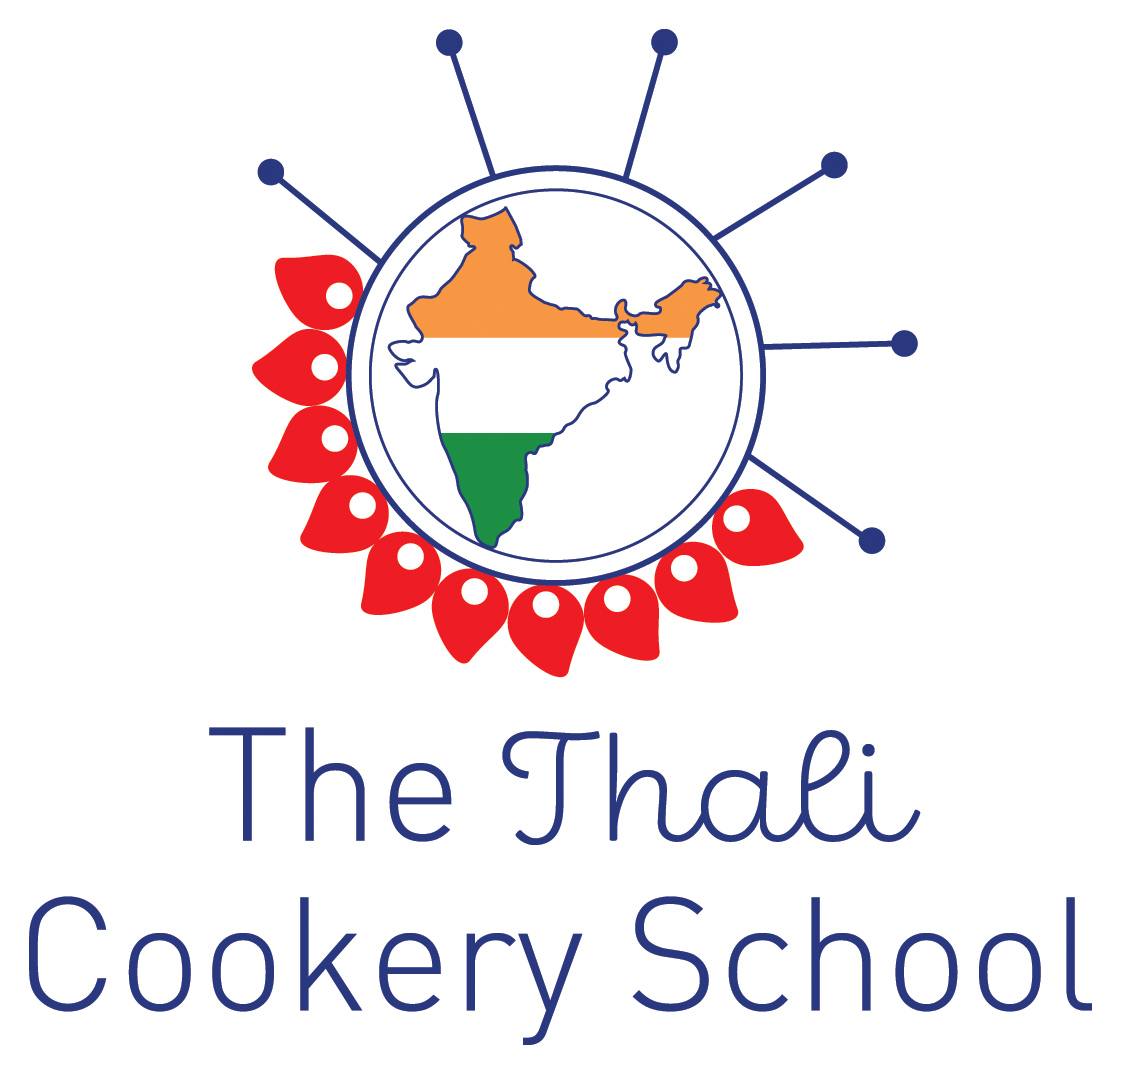 The Thali Cookery School